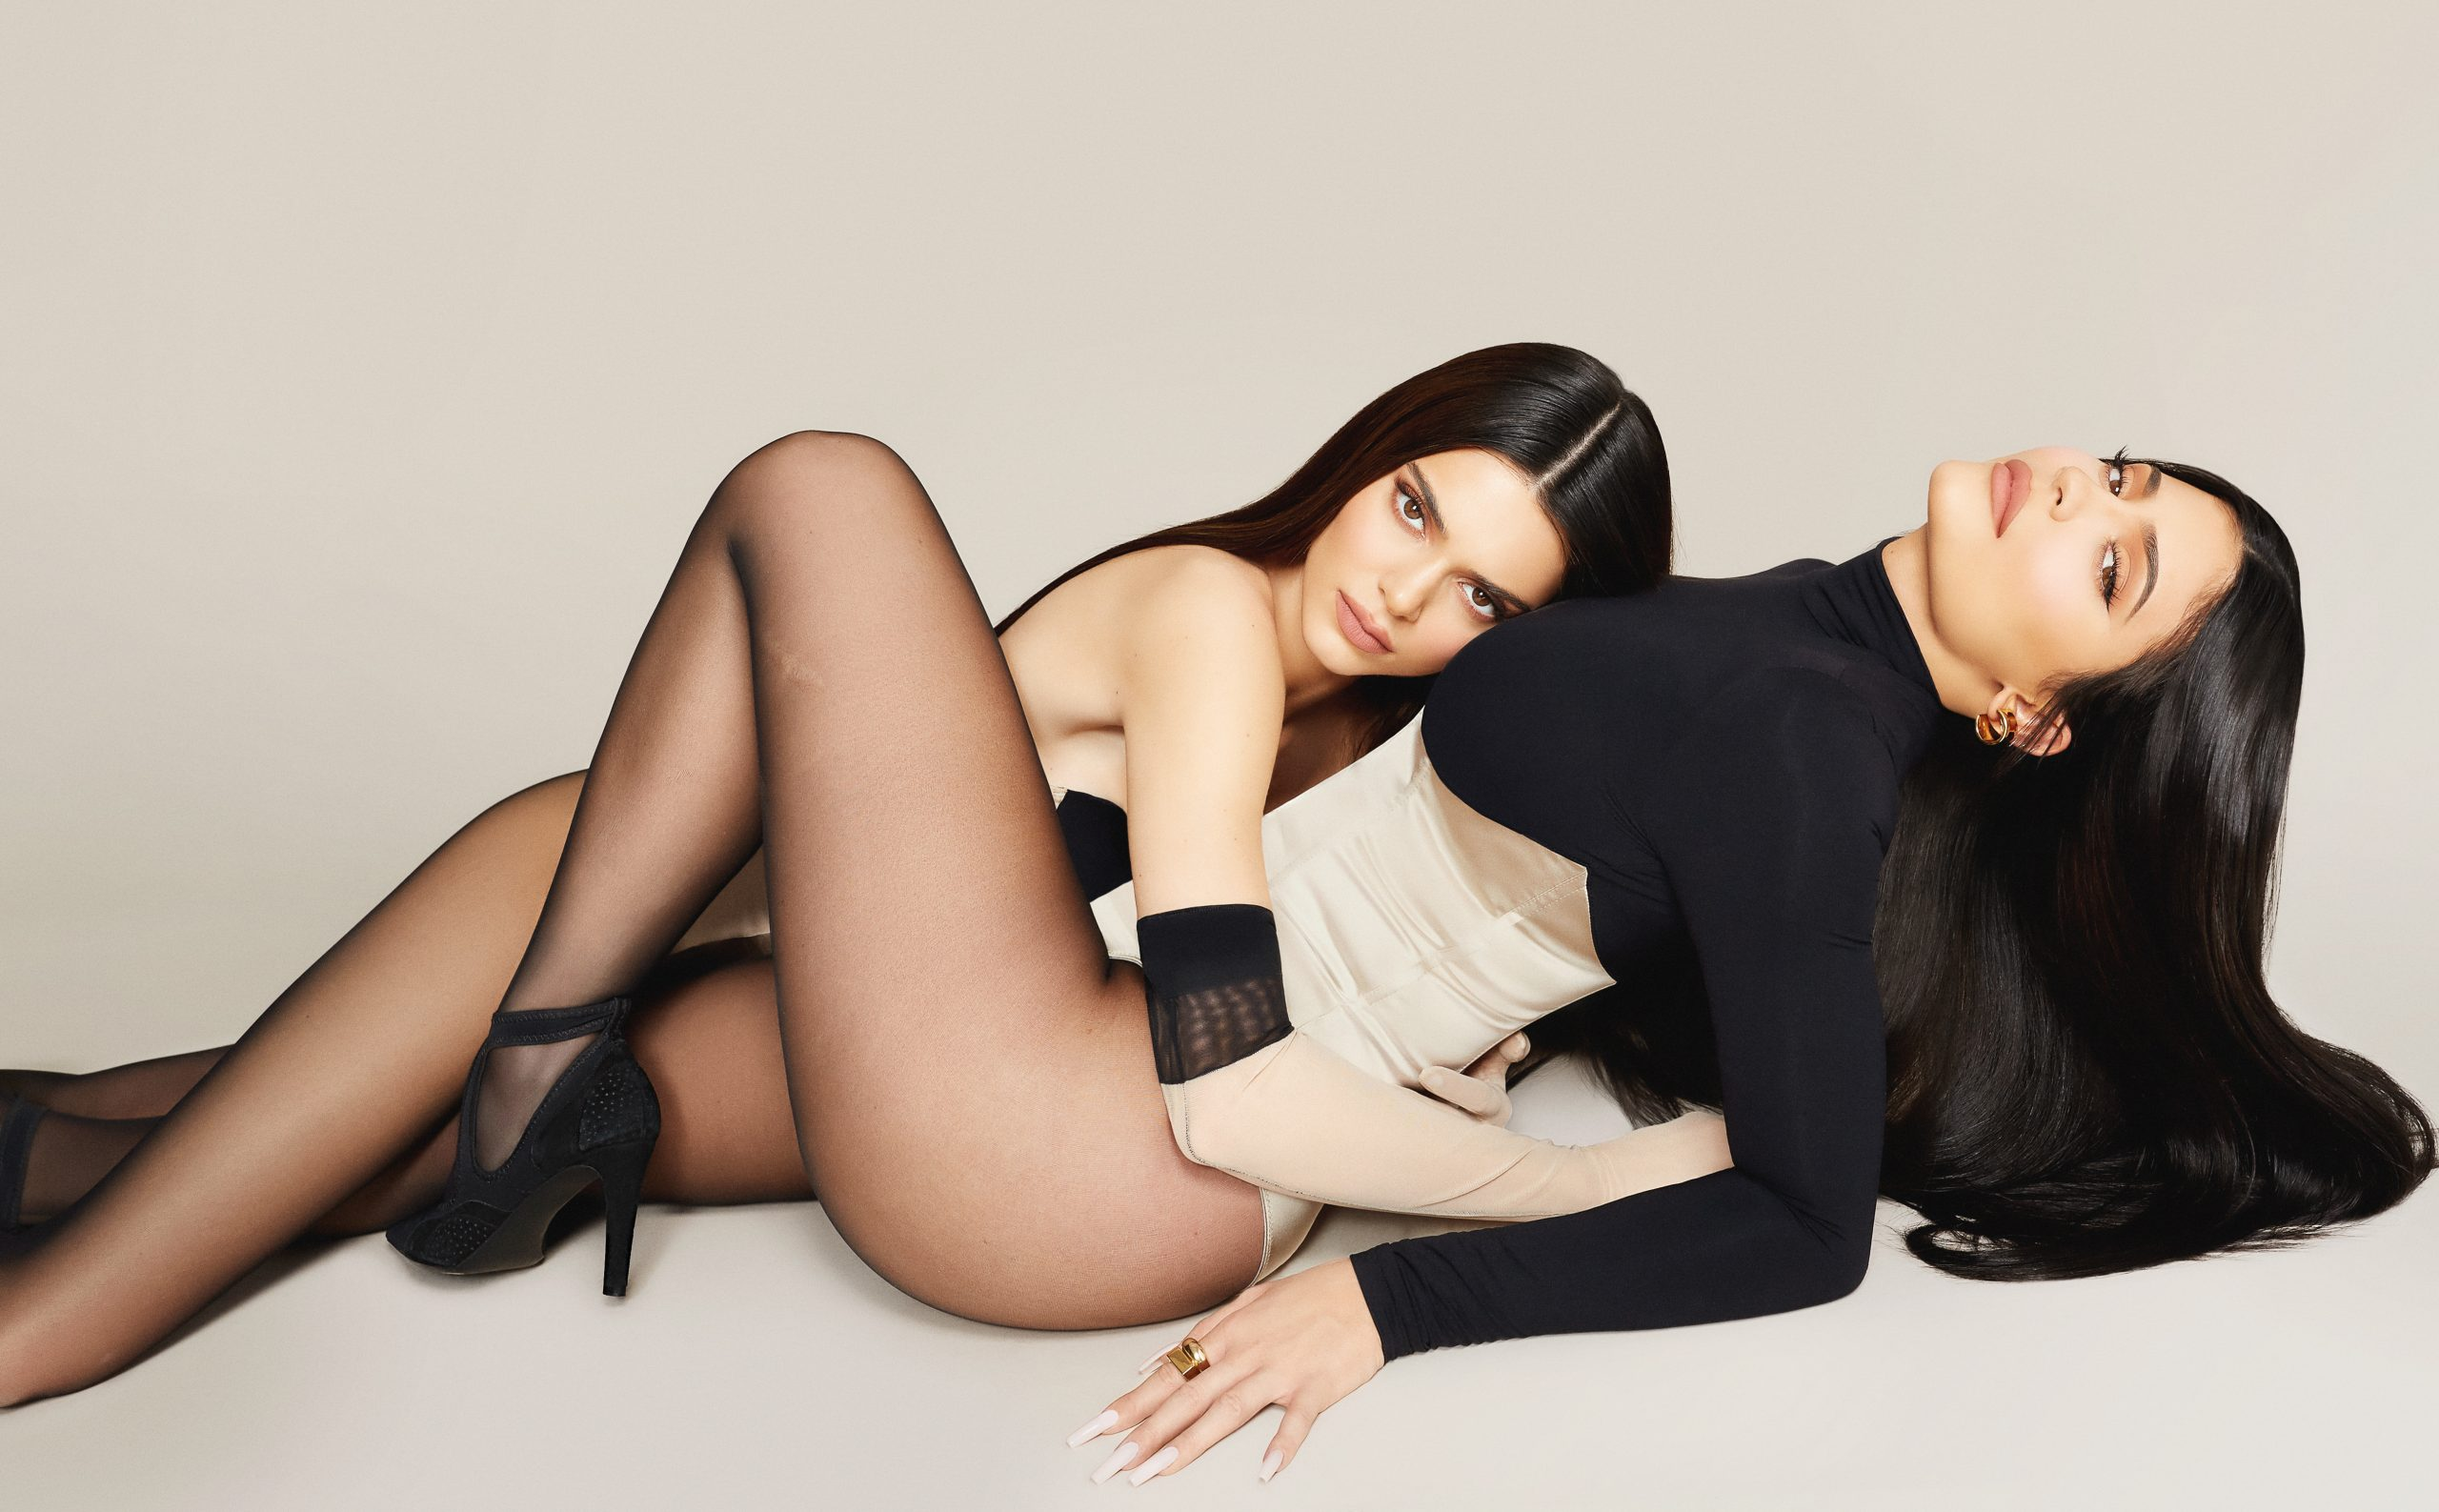 1KENDALL_KYLIE_03_187new